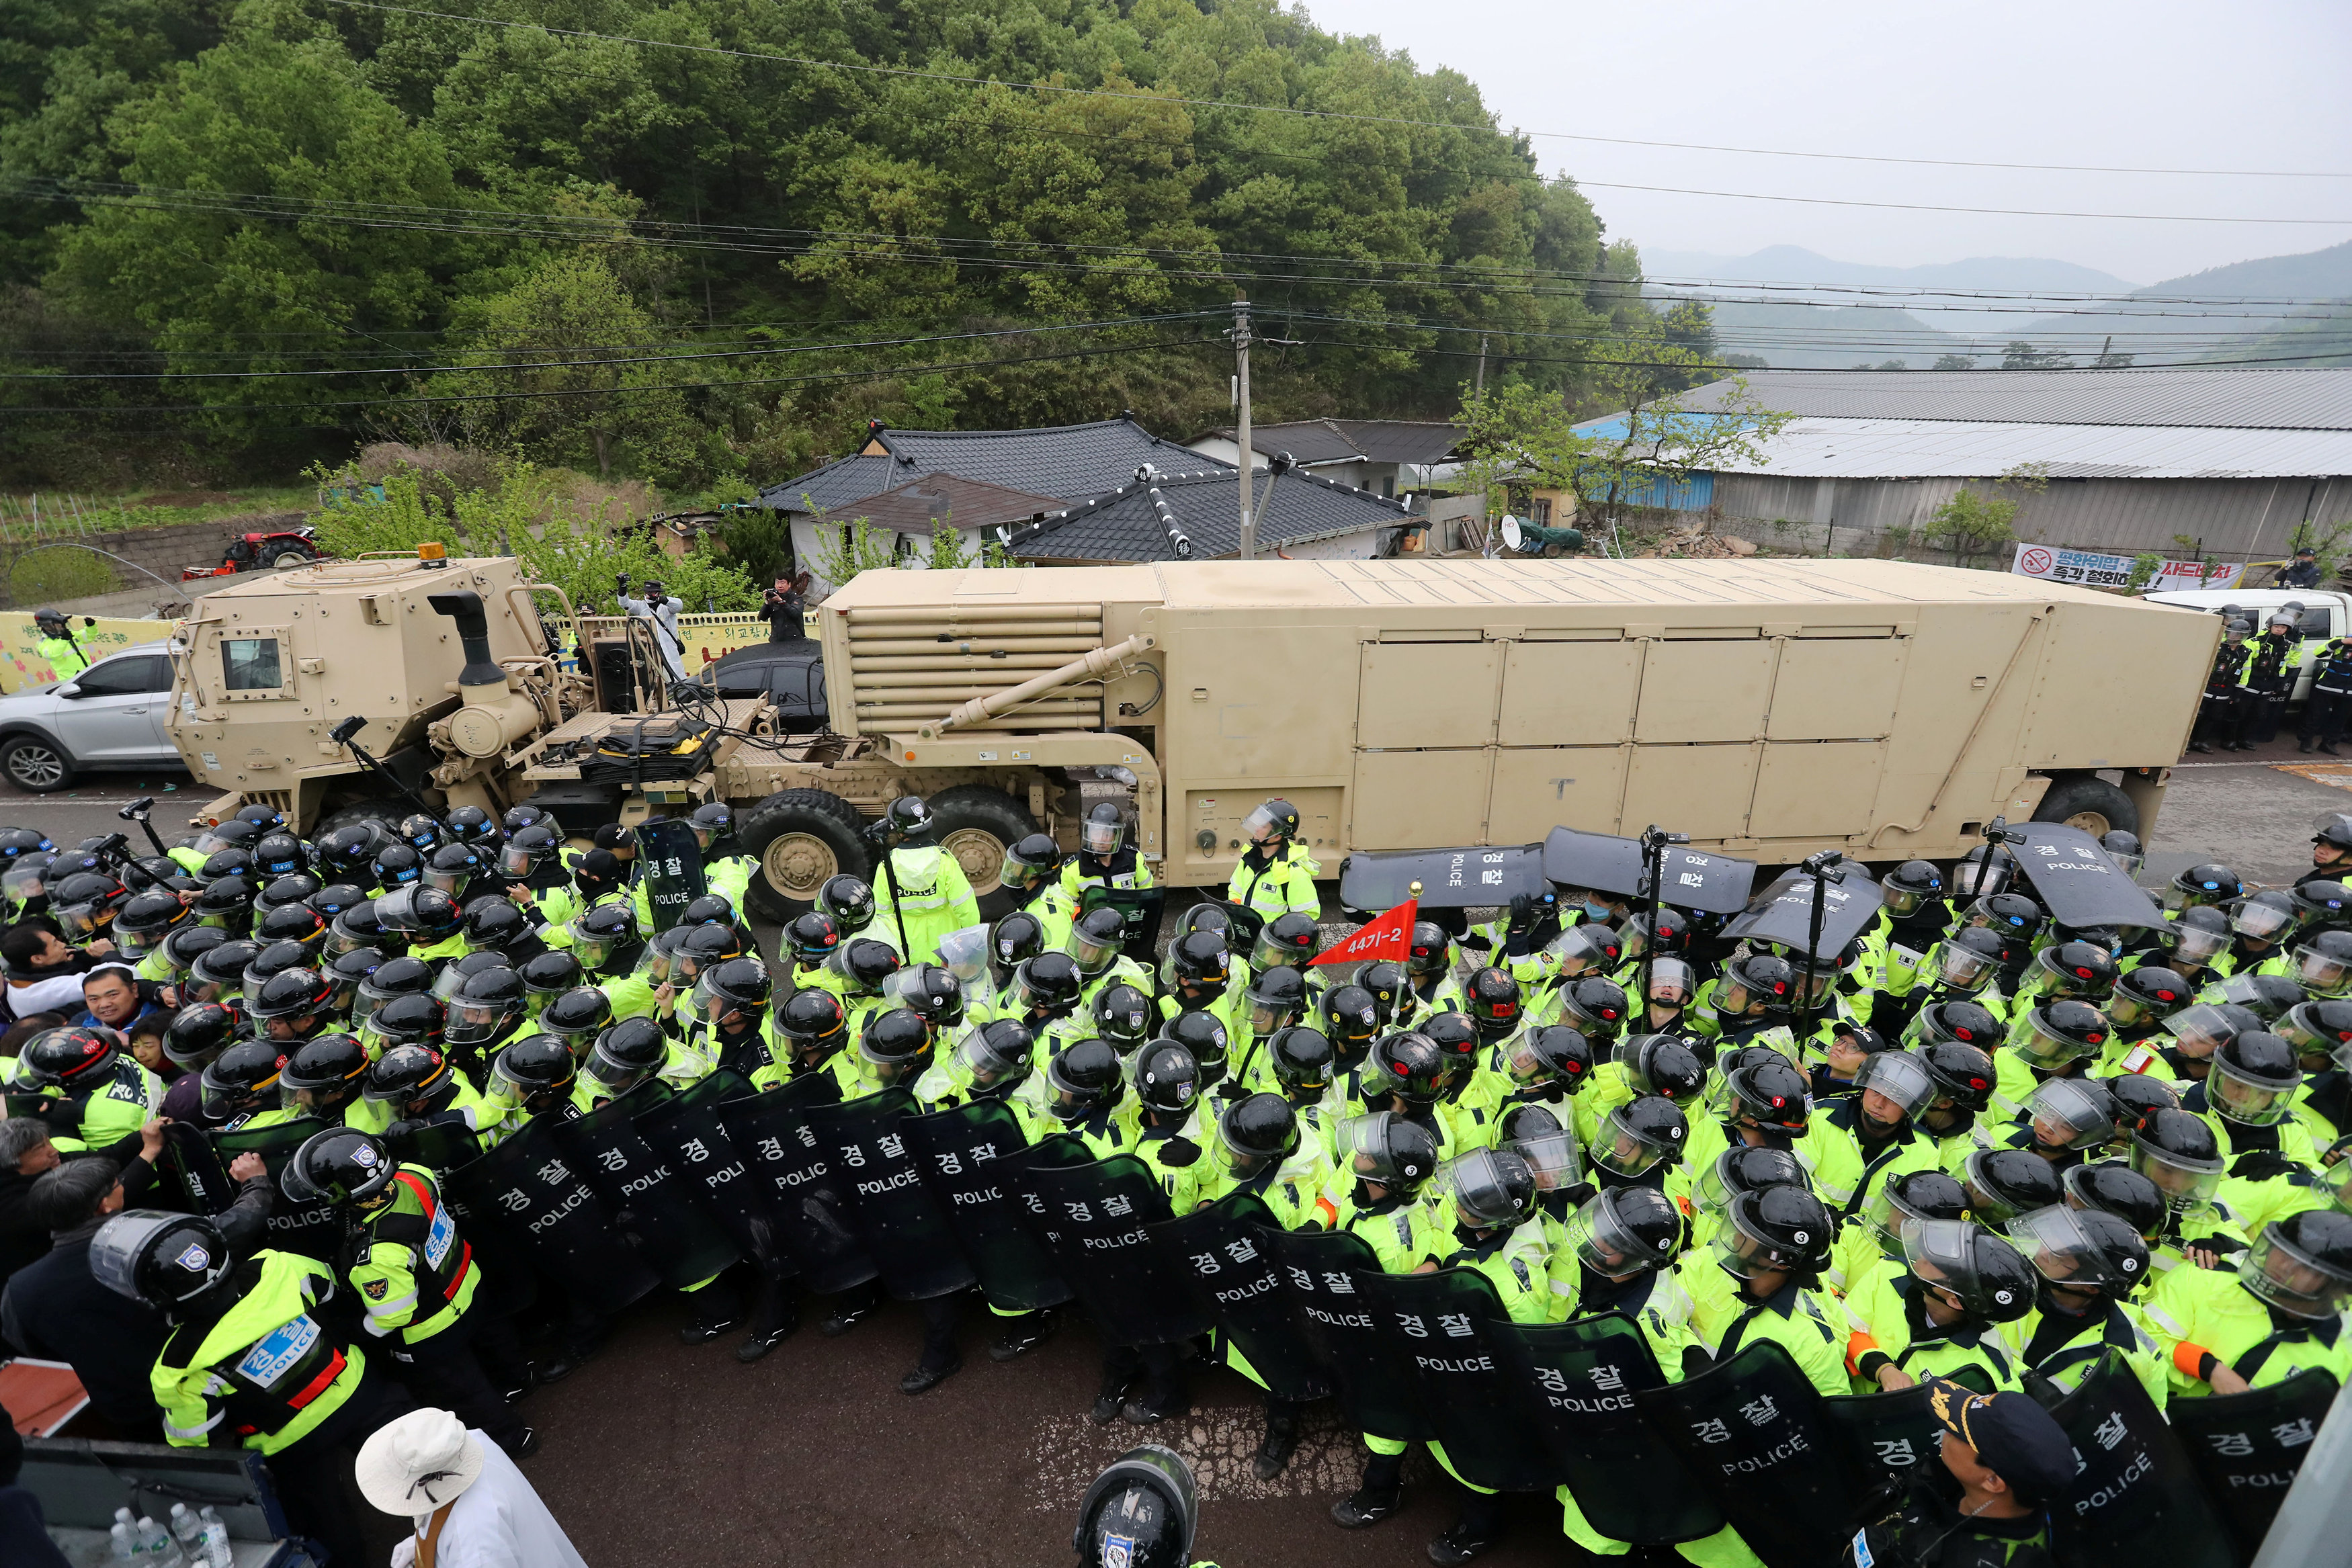 A U.S. military vehicle which is a part of Terminal High Altitude Area Defense (THAAD) system arrives in Seongju, South Korea on April 26, 2017. (Kim Jun-beom/Yonhap via REUTERS)